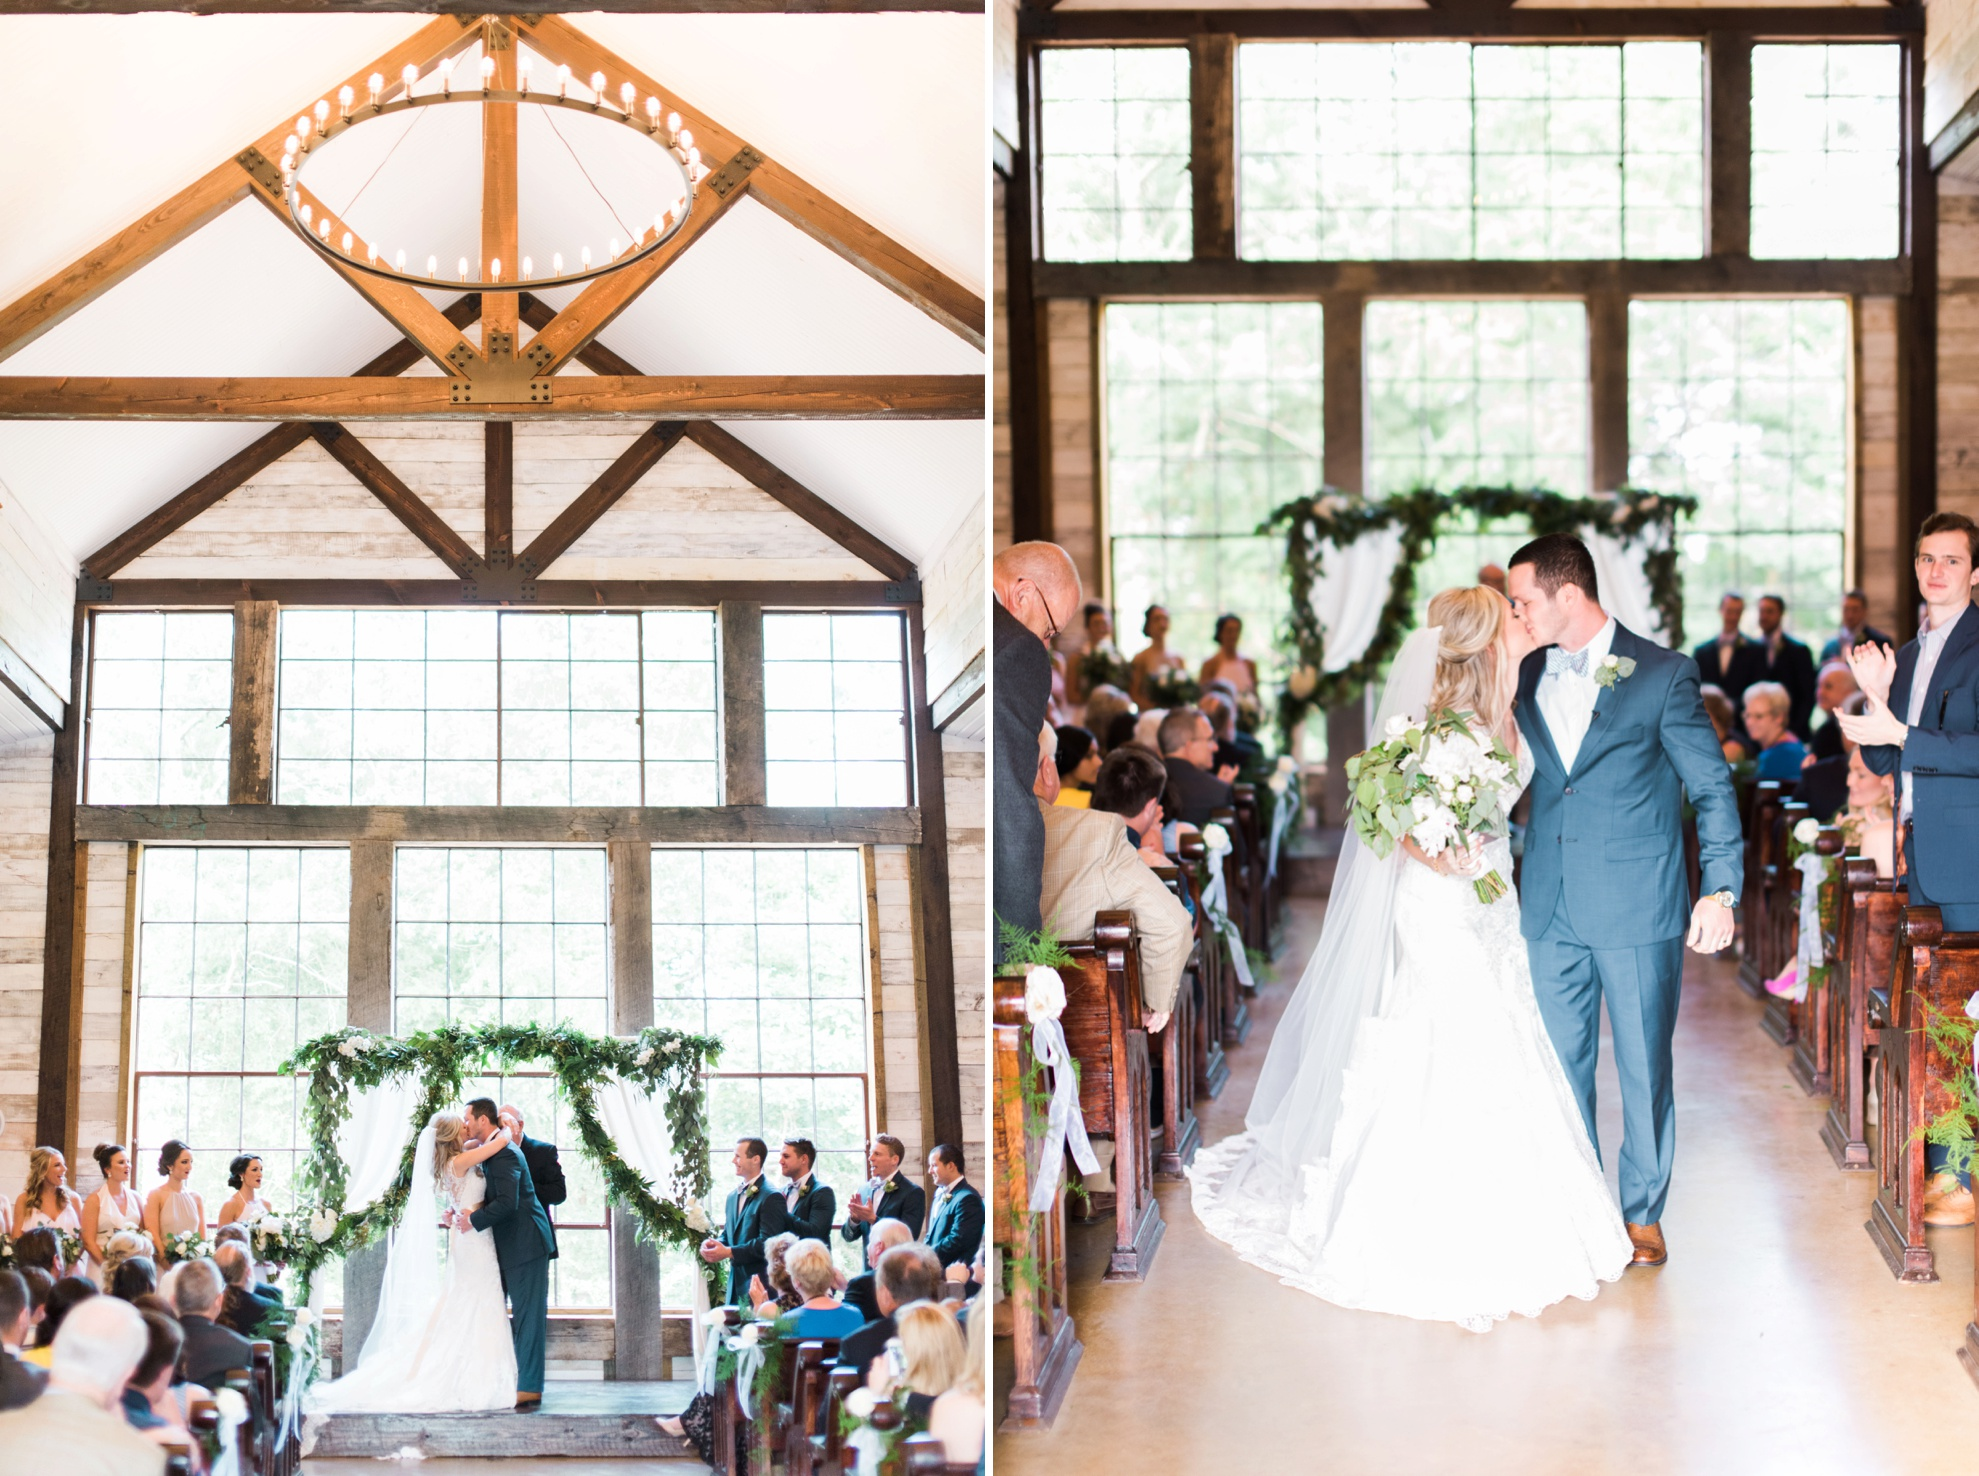 Big-Sky-Barn-Wedding-Ceremony-Reception-Photographer-Houston-Dana-Fernandez-Photography-6.jpg